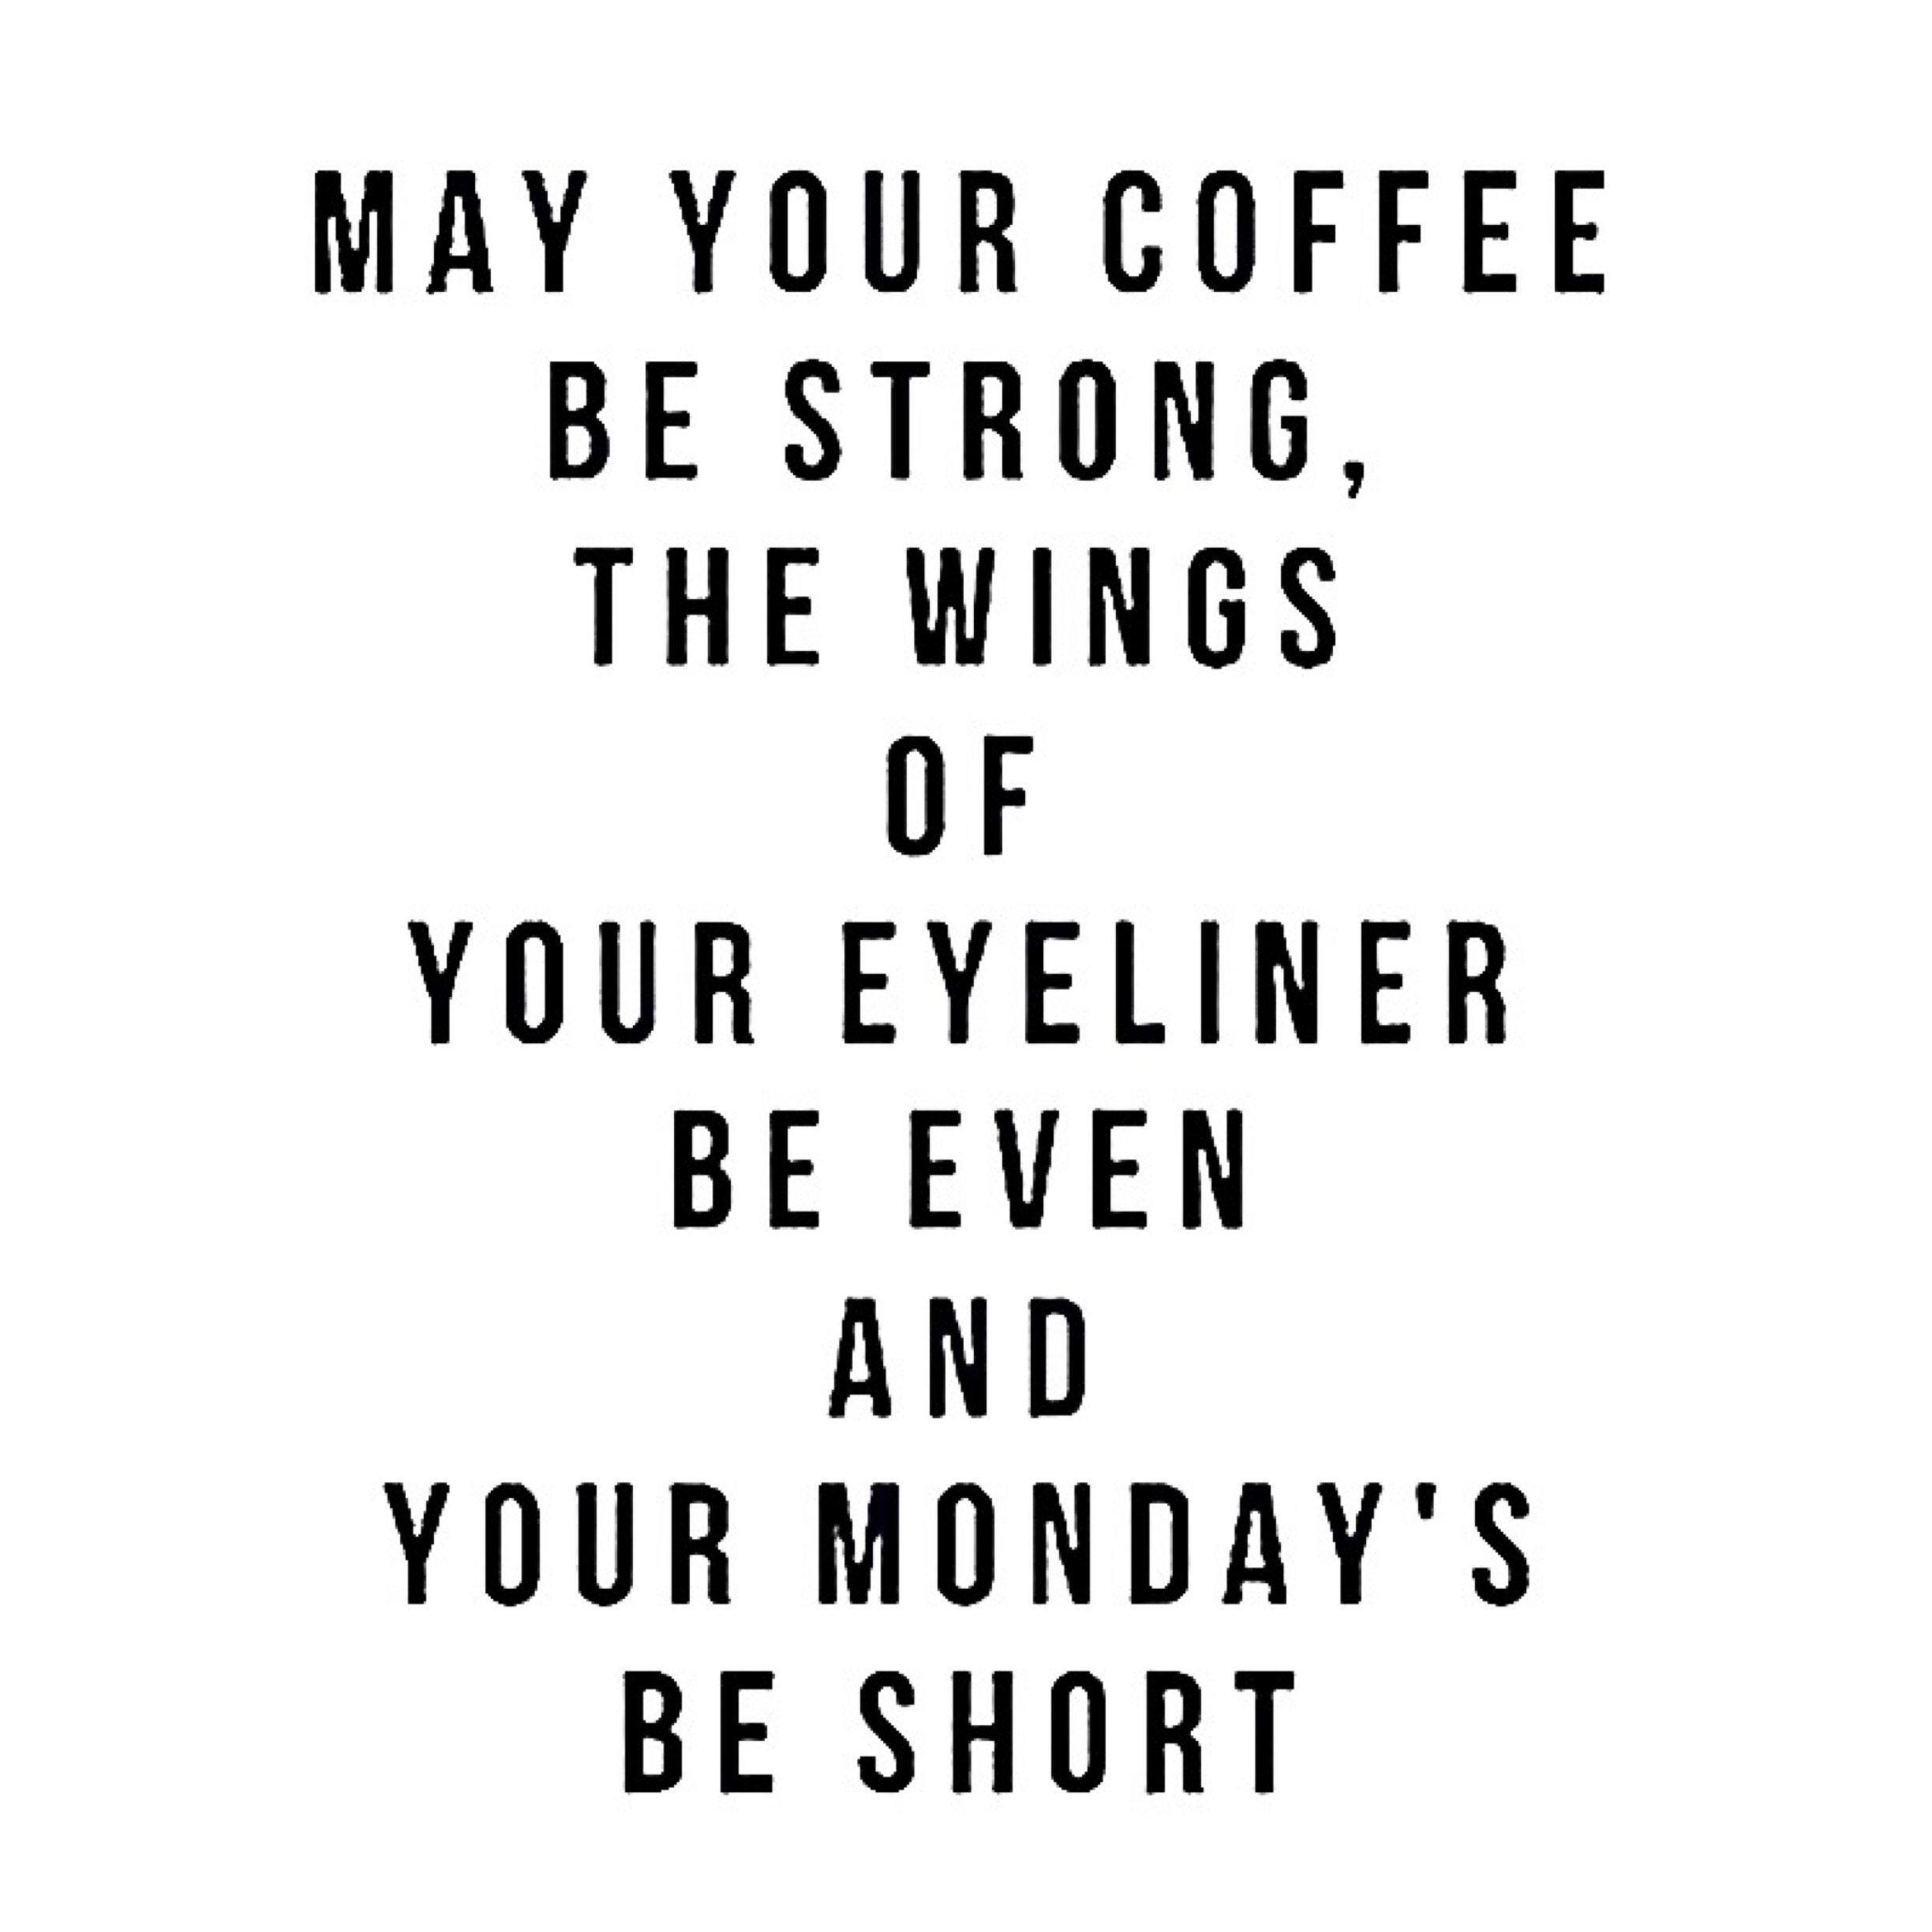 May Your Coffee Be Strong The Wings Of Your Eyeliner Even And Your